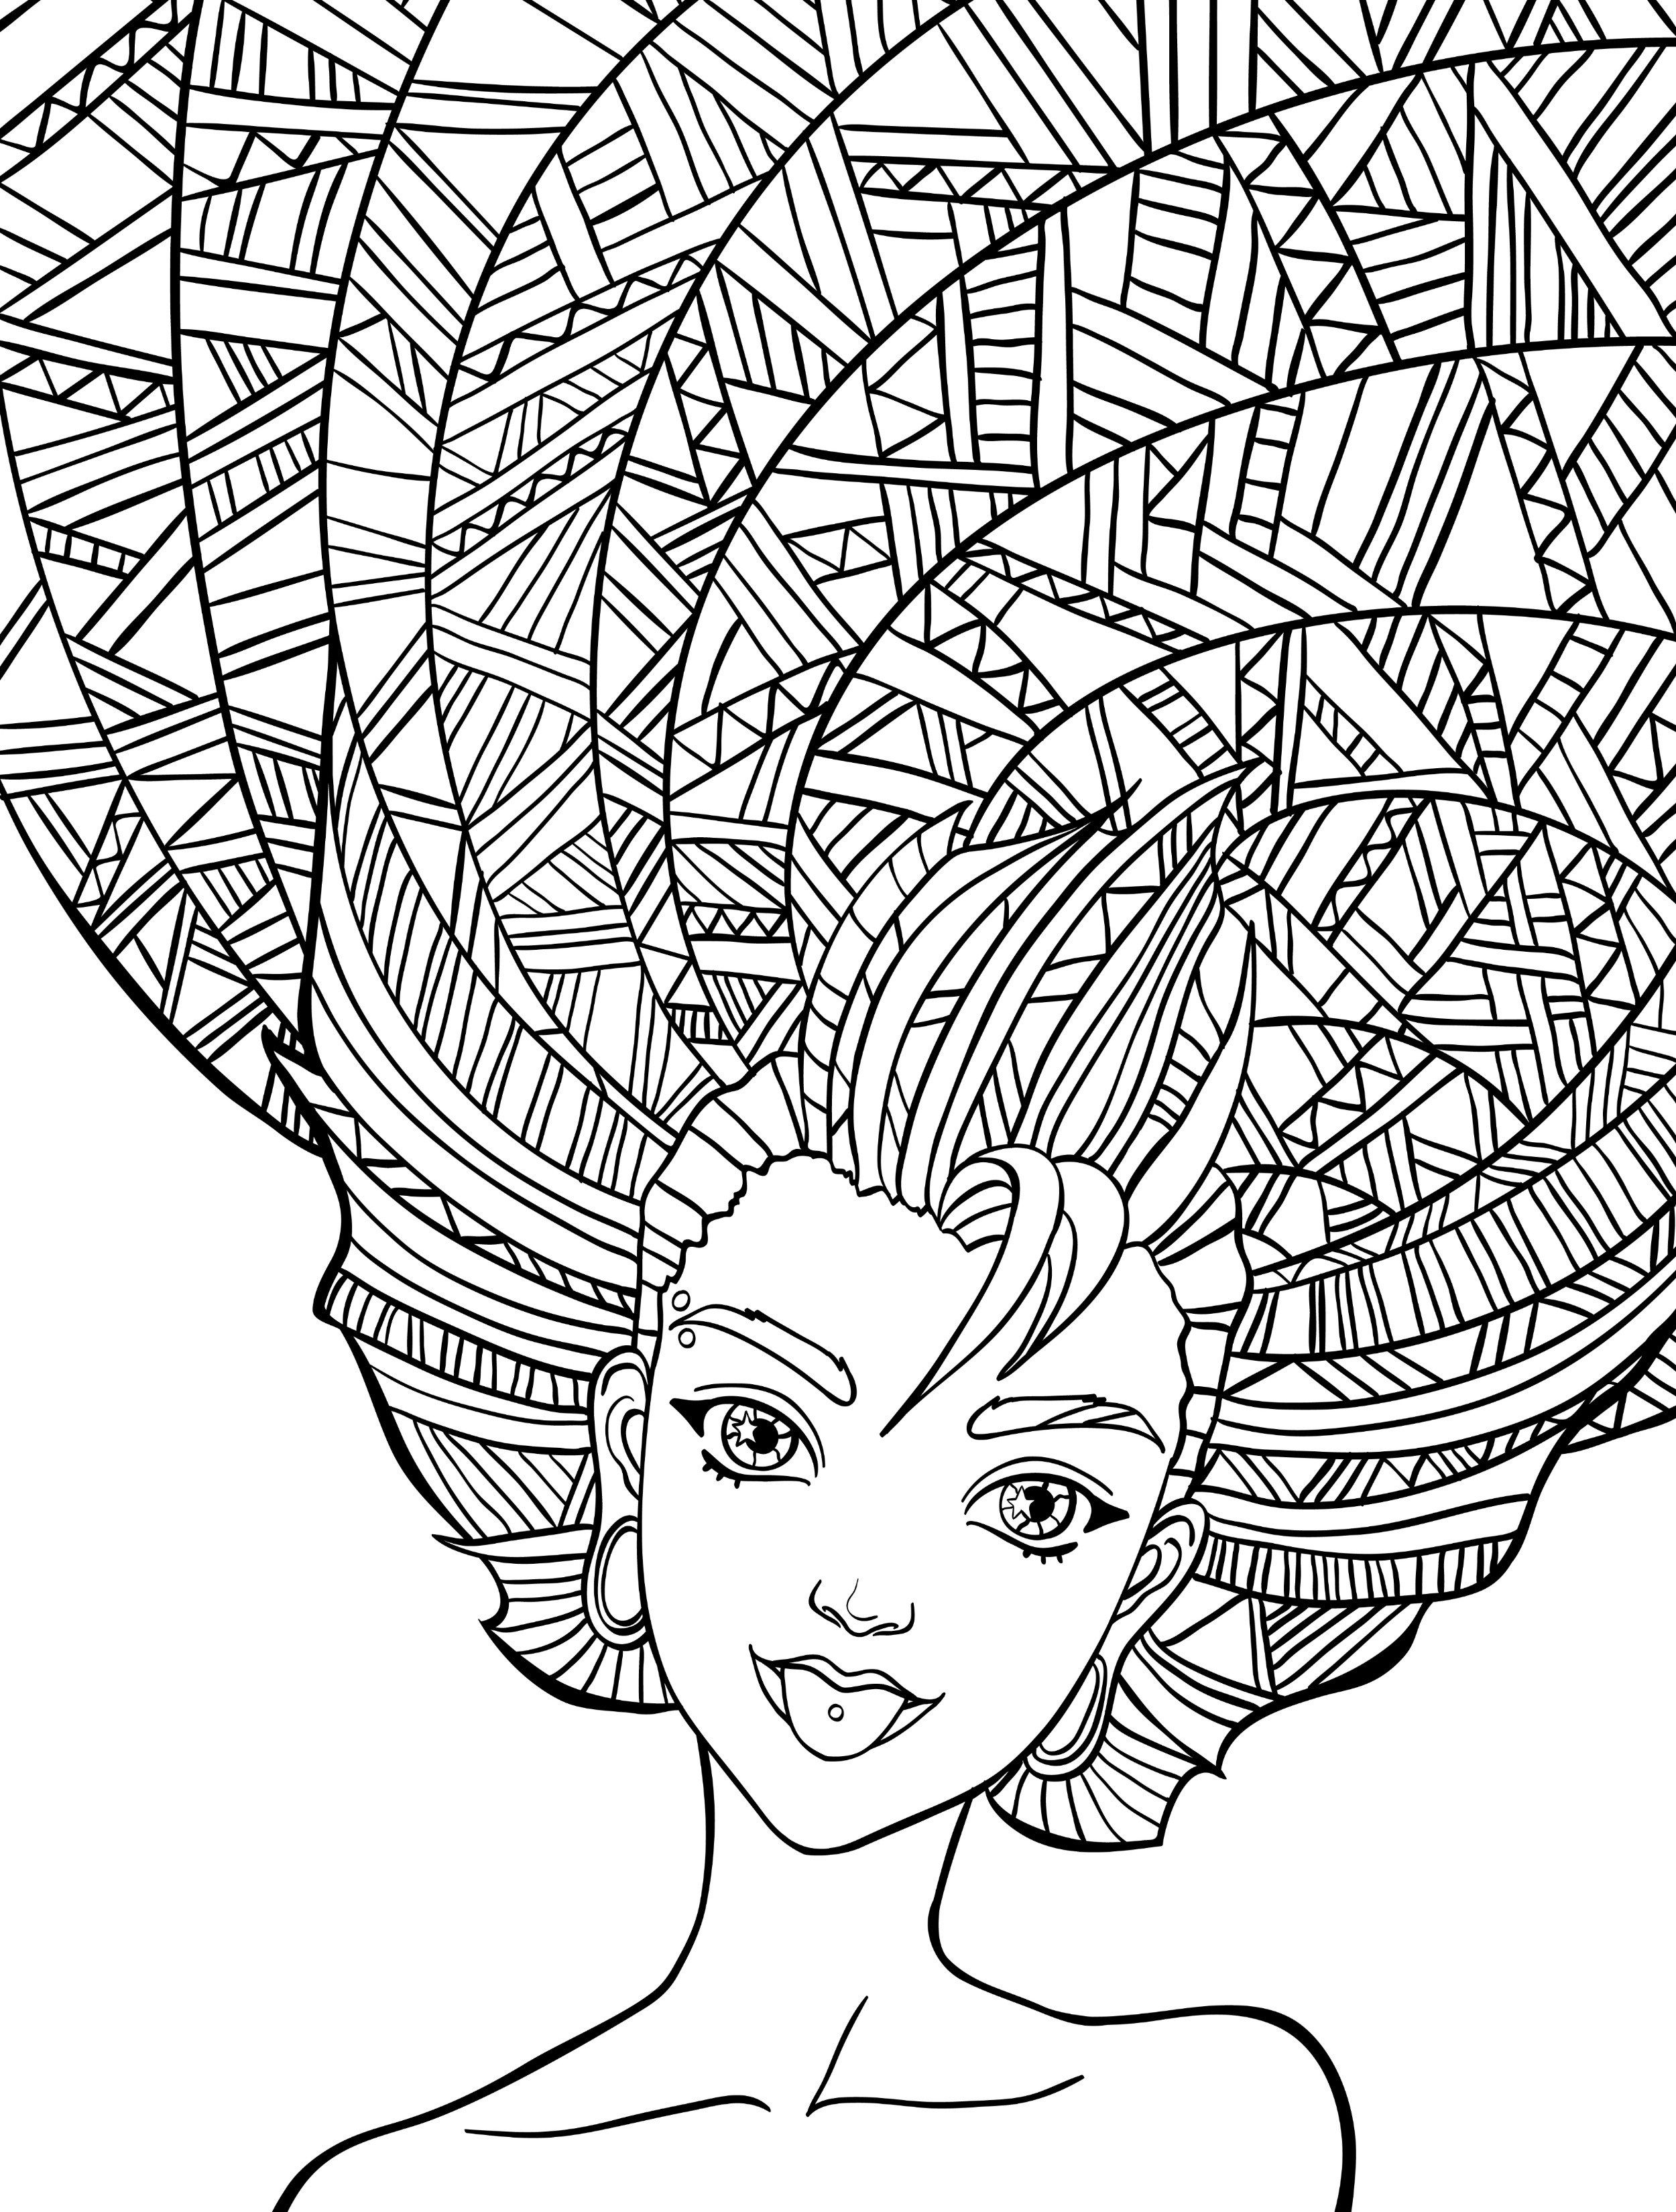 Printable Hair Coloring Pages. 10 Crazy Hair Adult Coloring Pages  Page 9 of 12 Nerdy Mamma funny adult coloring pages free to print